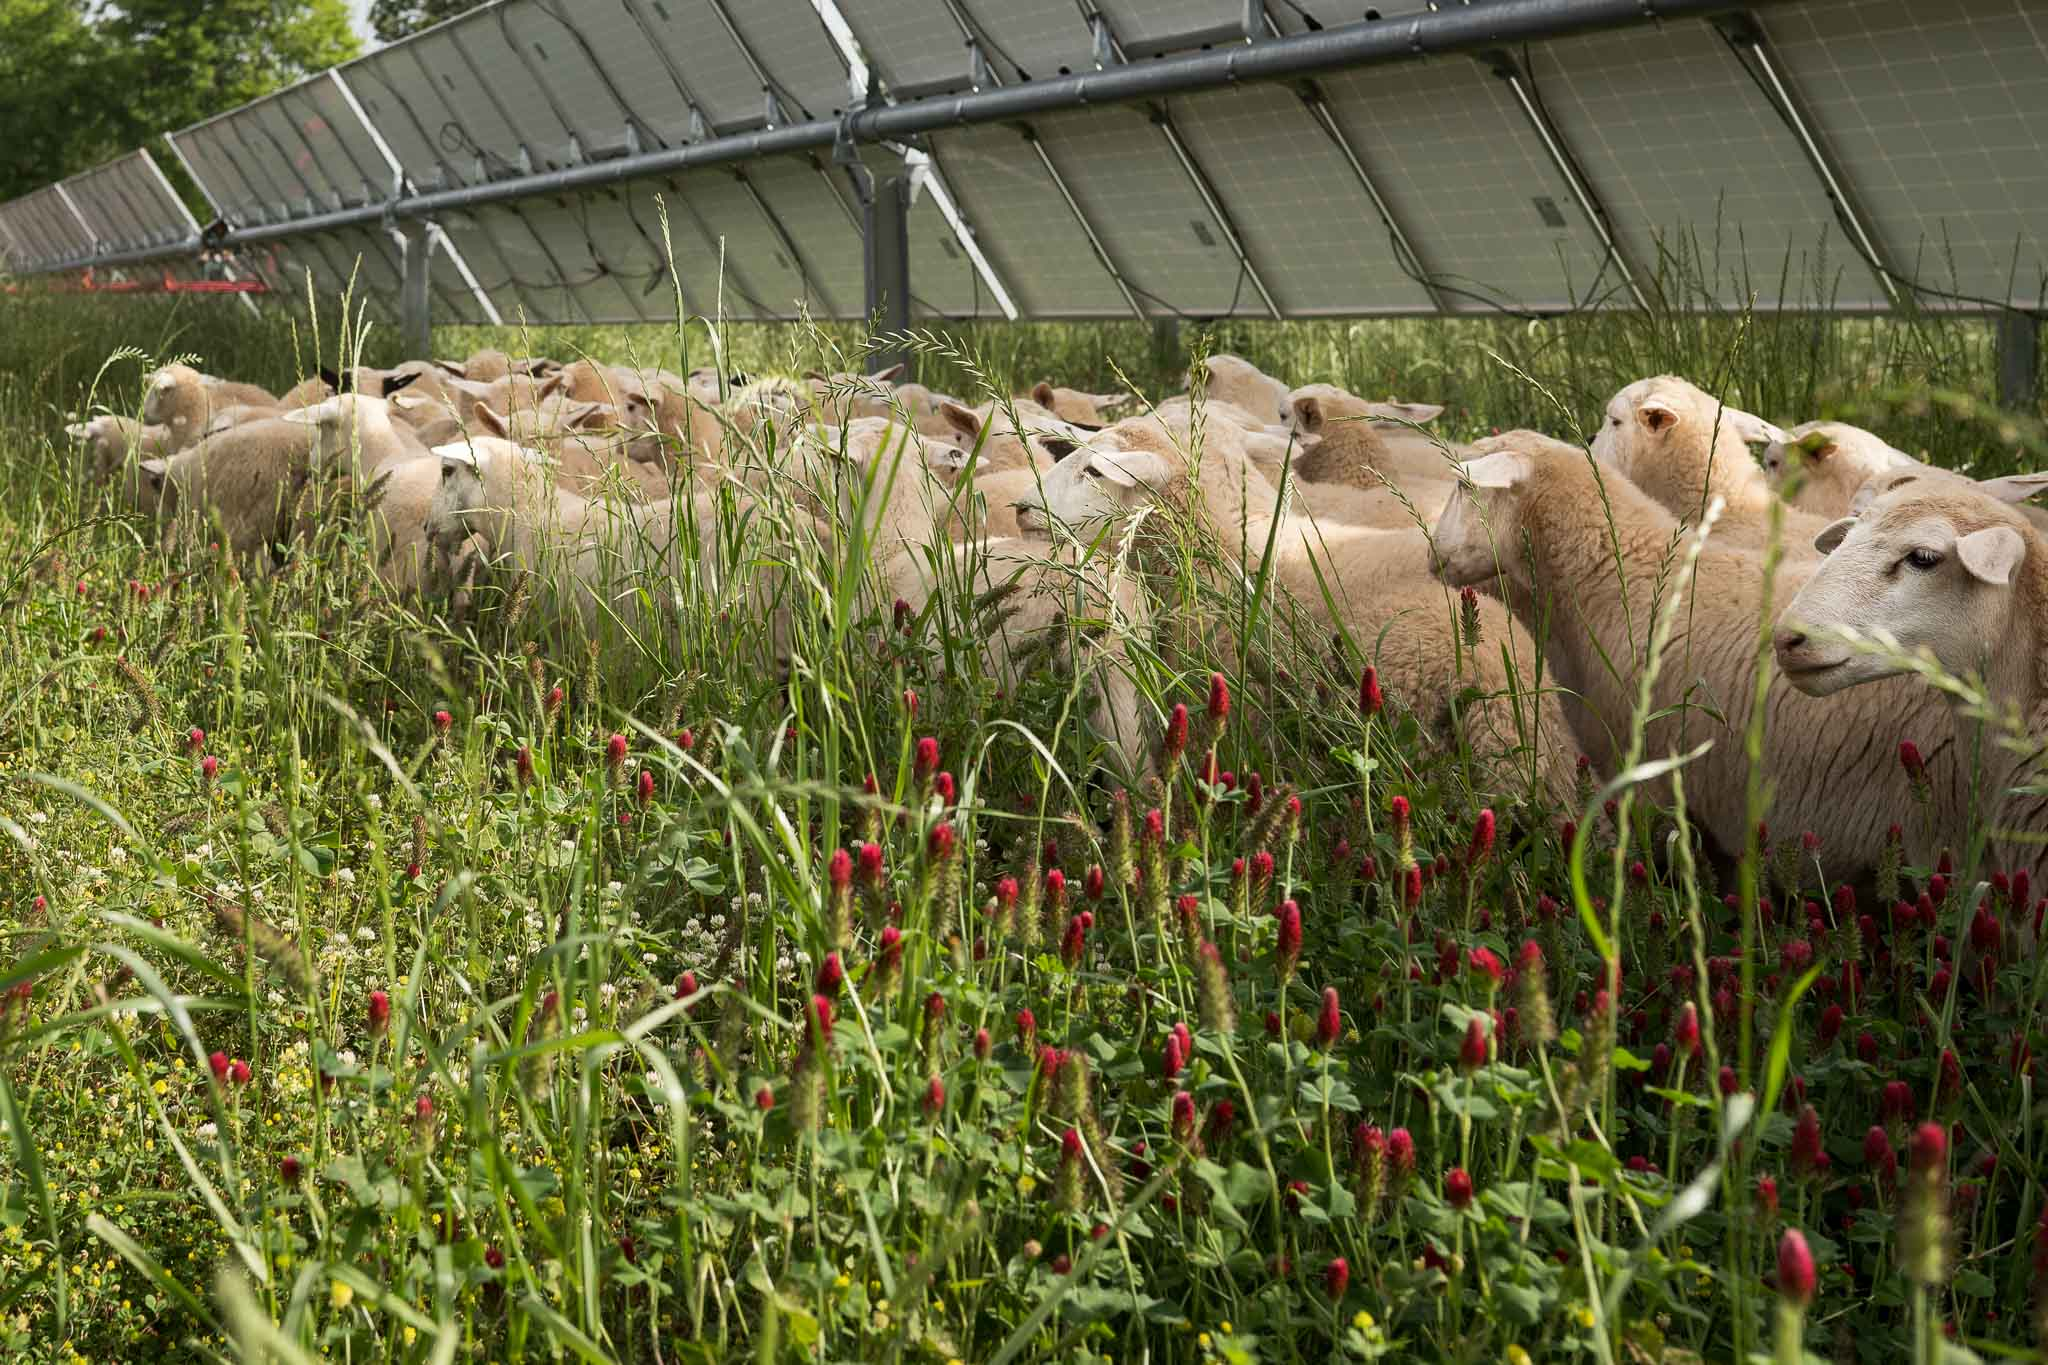 sheep grazing in regenerative energy farm